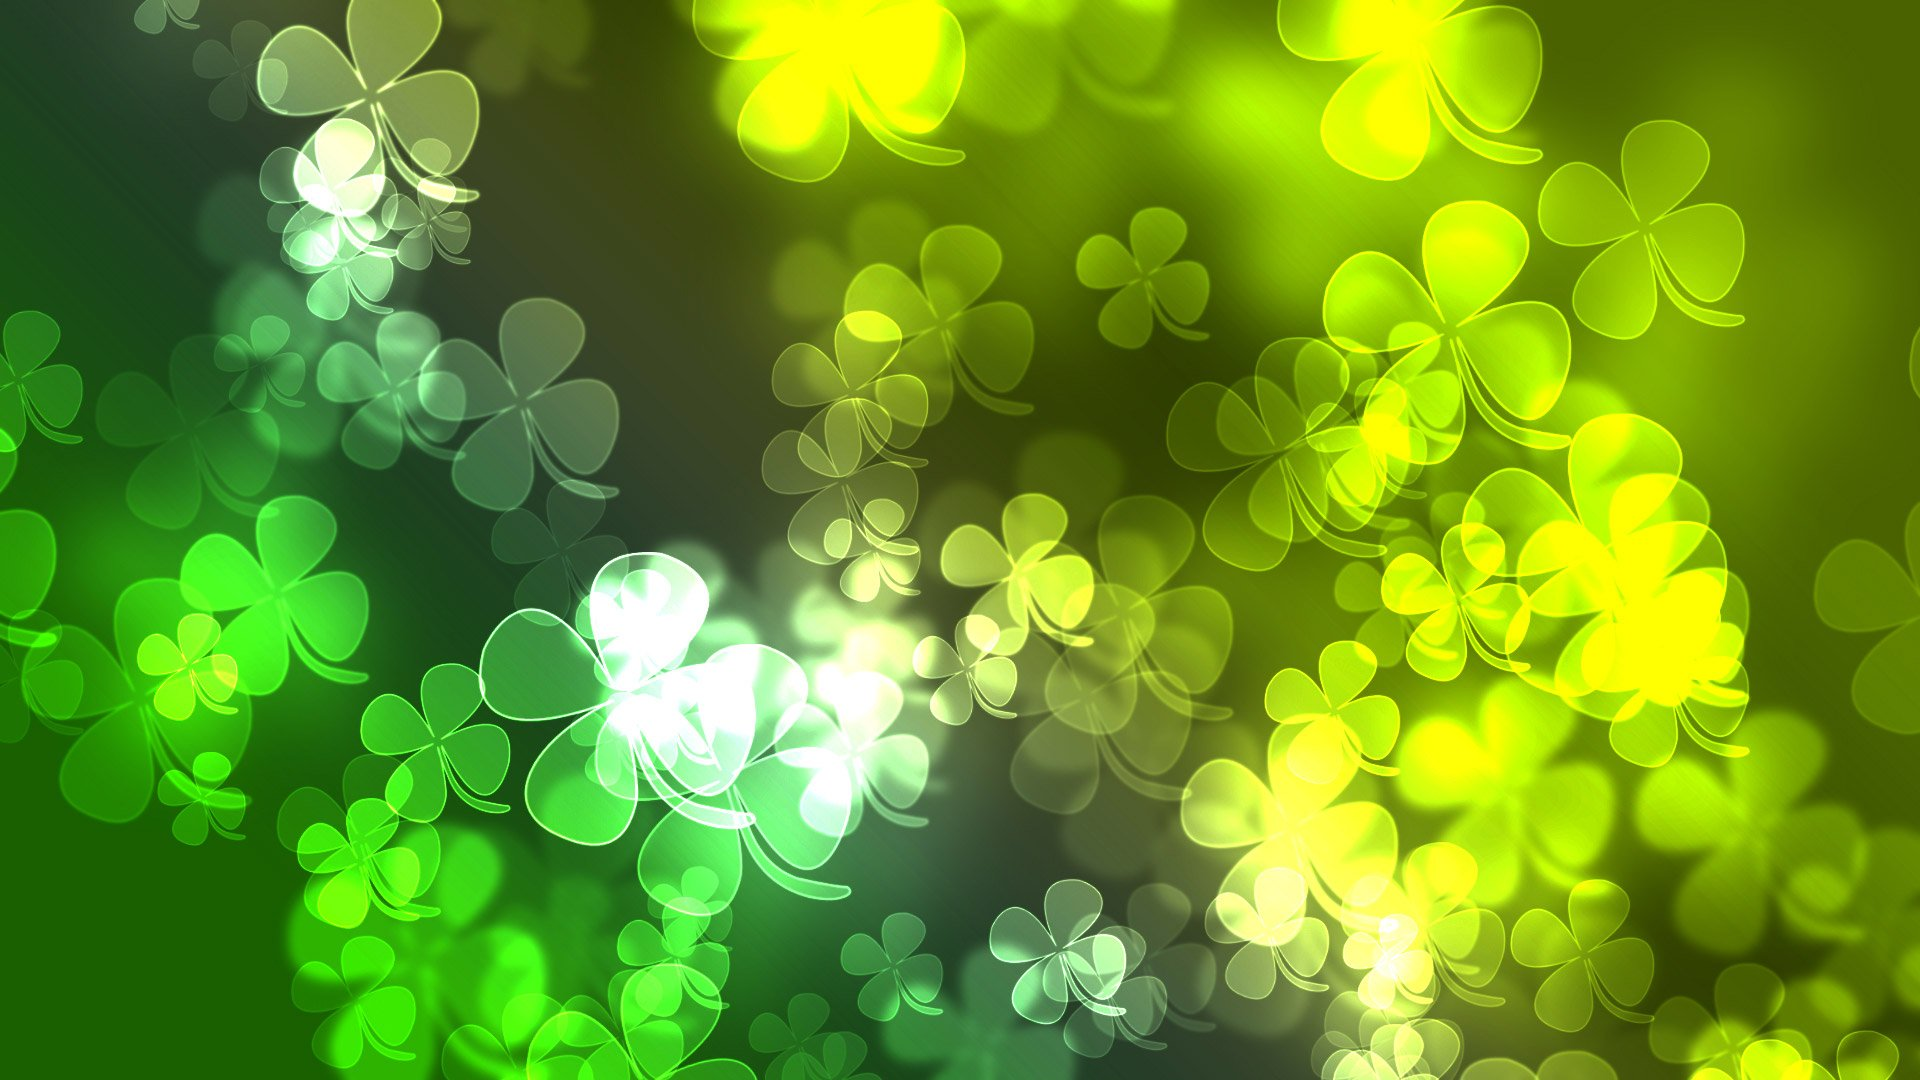 patricks day shamrock background - photo #15